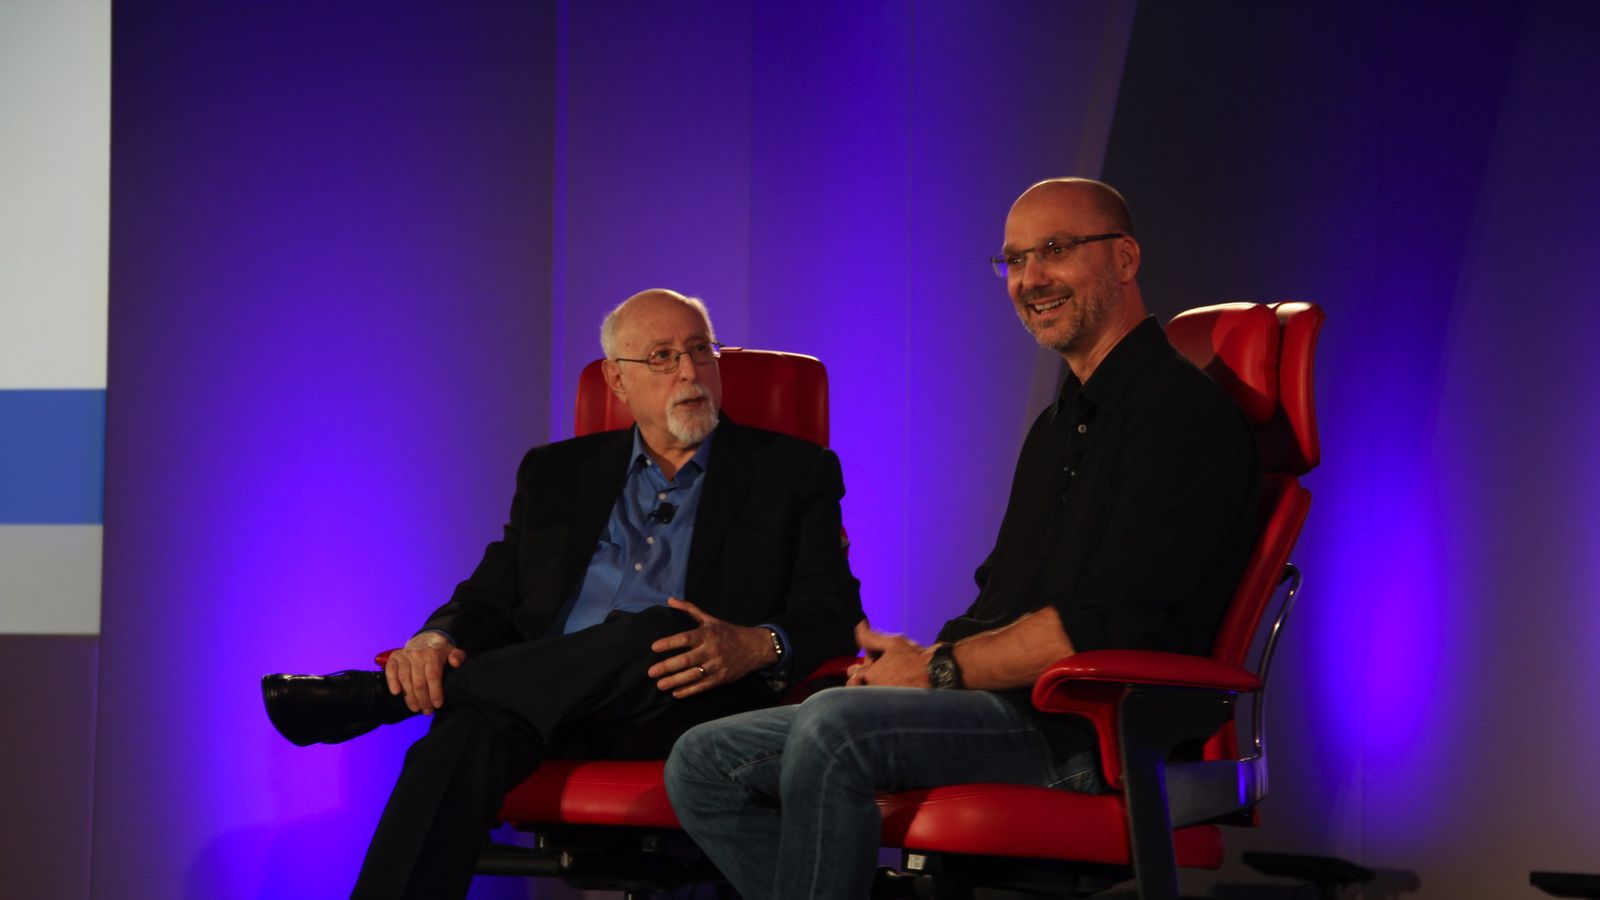 Android's co-founder is building a new company and a new kind of smartphone